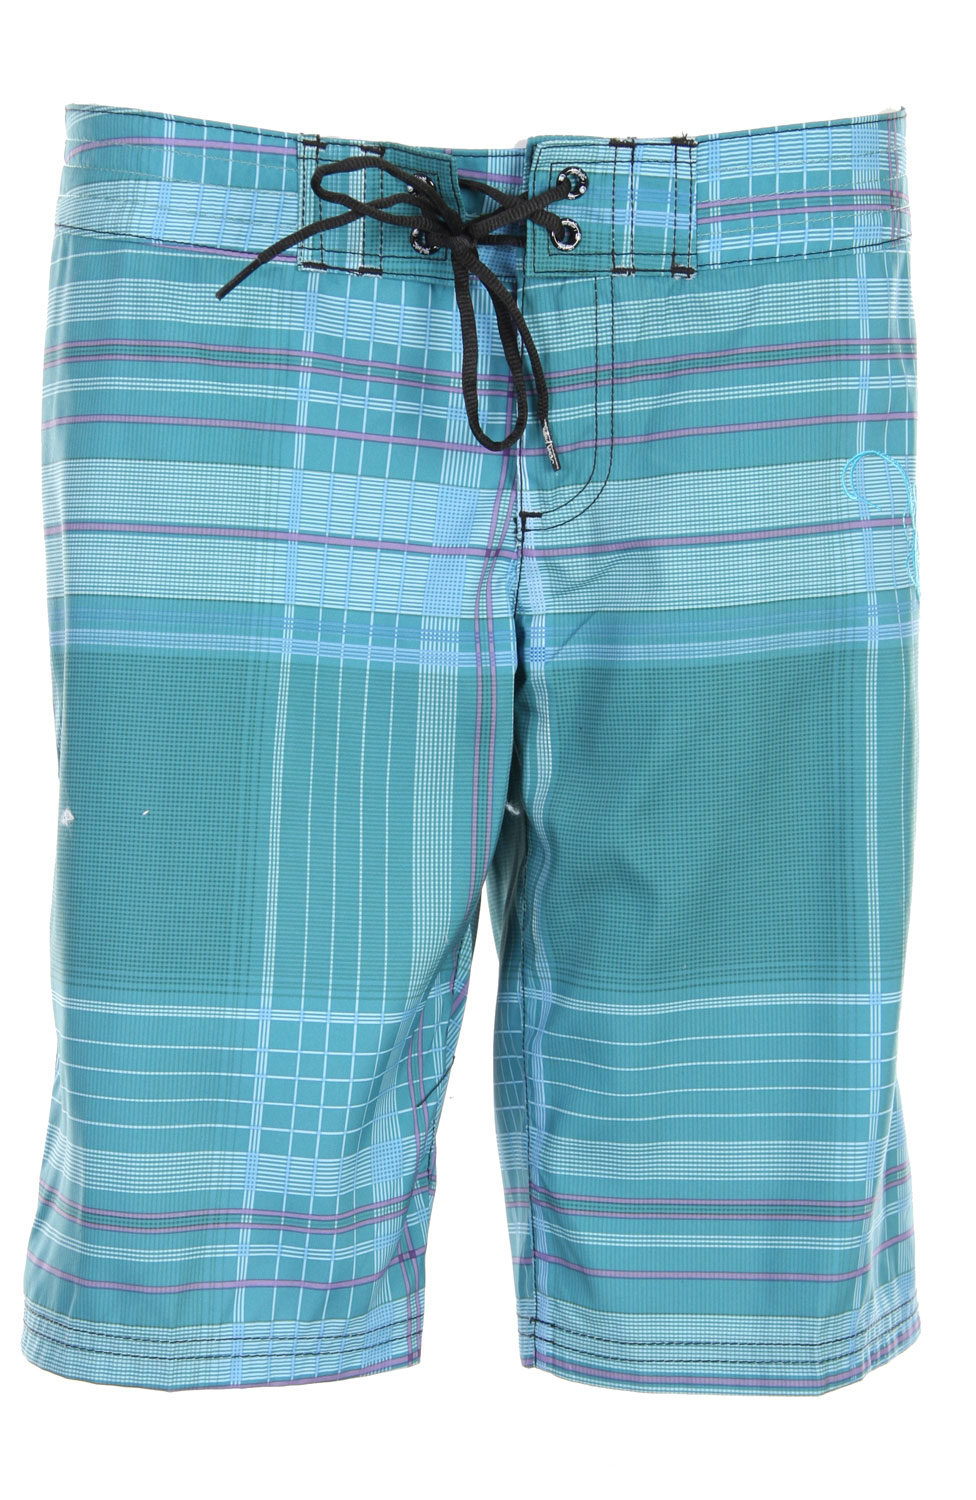 "Surf Effortless style just seems to flow from the Liquid Force line - like the Liquid Force Switchstyle Boardshorts for women. Fabricated in lightweight, ultra-soft sublimated megasuede, Switchstyle shorts in bright pastel plaids measure 11"" at the inseam. Fly and drawstring combo provide a secure fit; tilted velcro back pocket embroidered with the Liquid Force logo and coordinating embroidered scroll trim on the side give the Switchstyle a dash of panache. With style like this, why would you ever switch Key Features of The Liquid Force Switchstyle Women's Boardshorts:  11"" Inseam  Sublimated Megasuede  Nylon Fly Front with Tie  Back Pocket with Velcro Closure - $18.95"